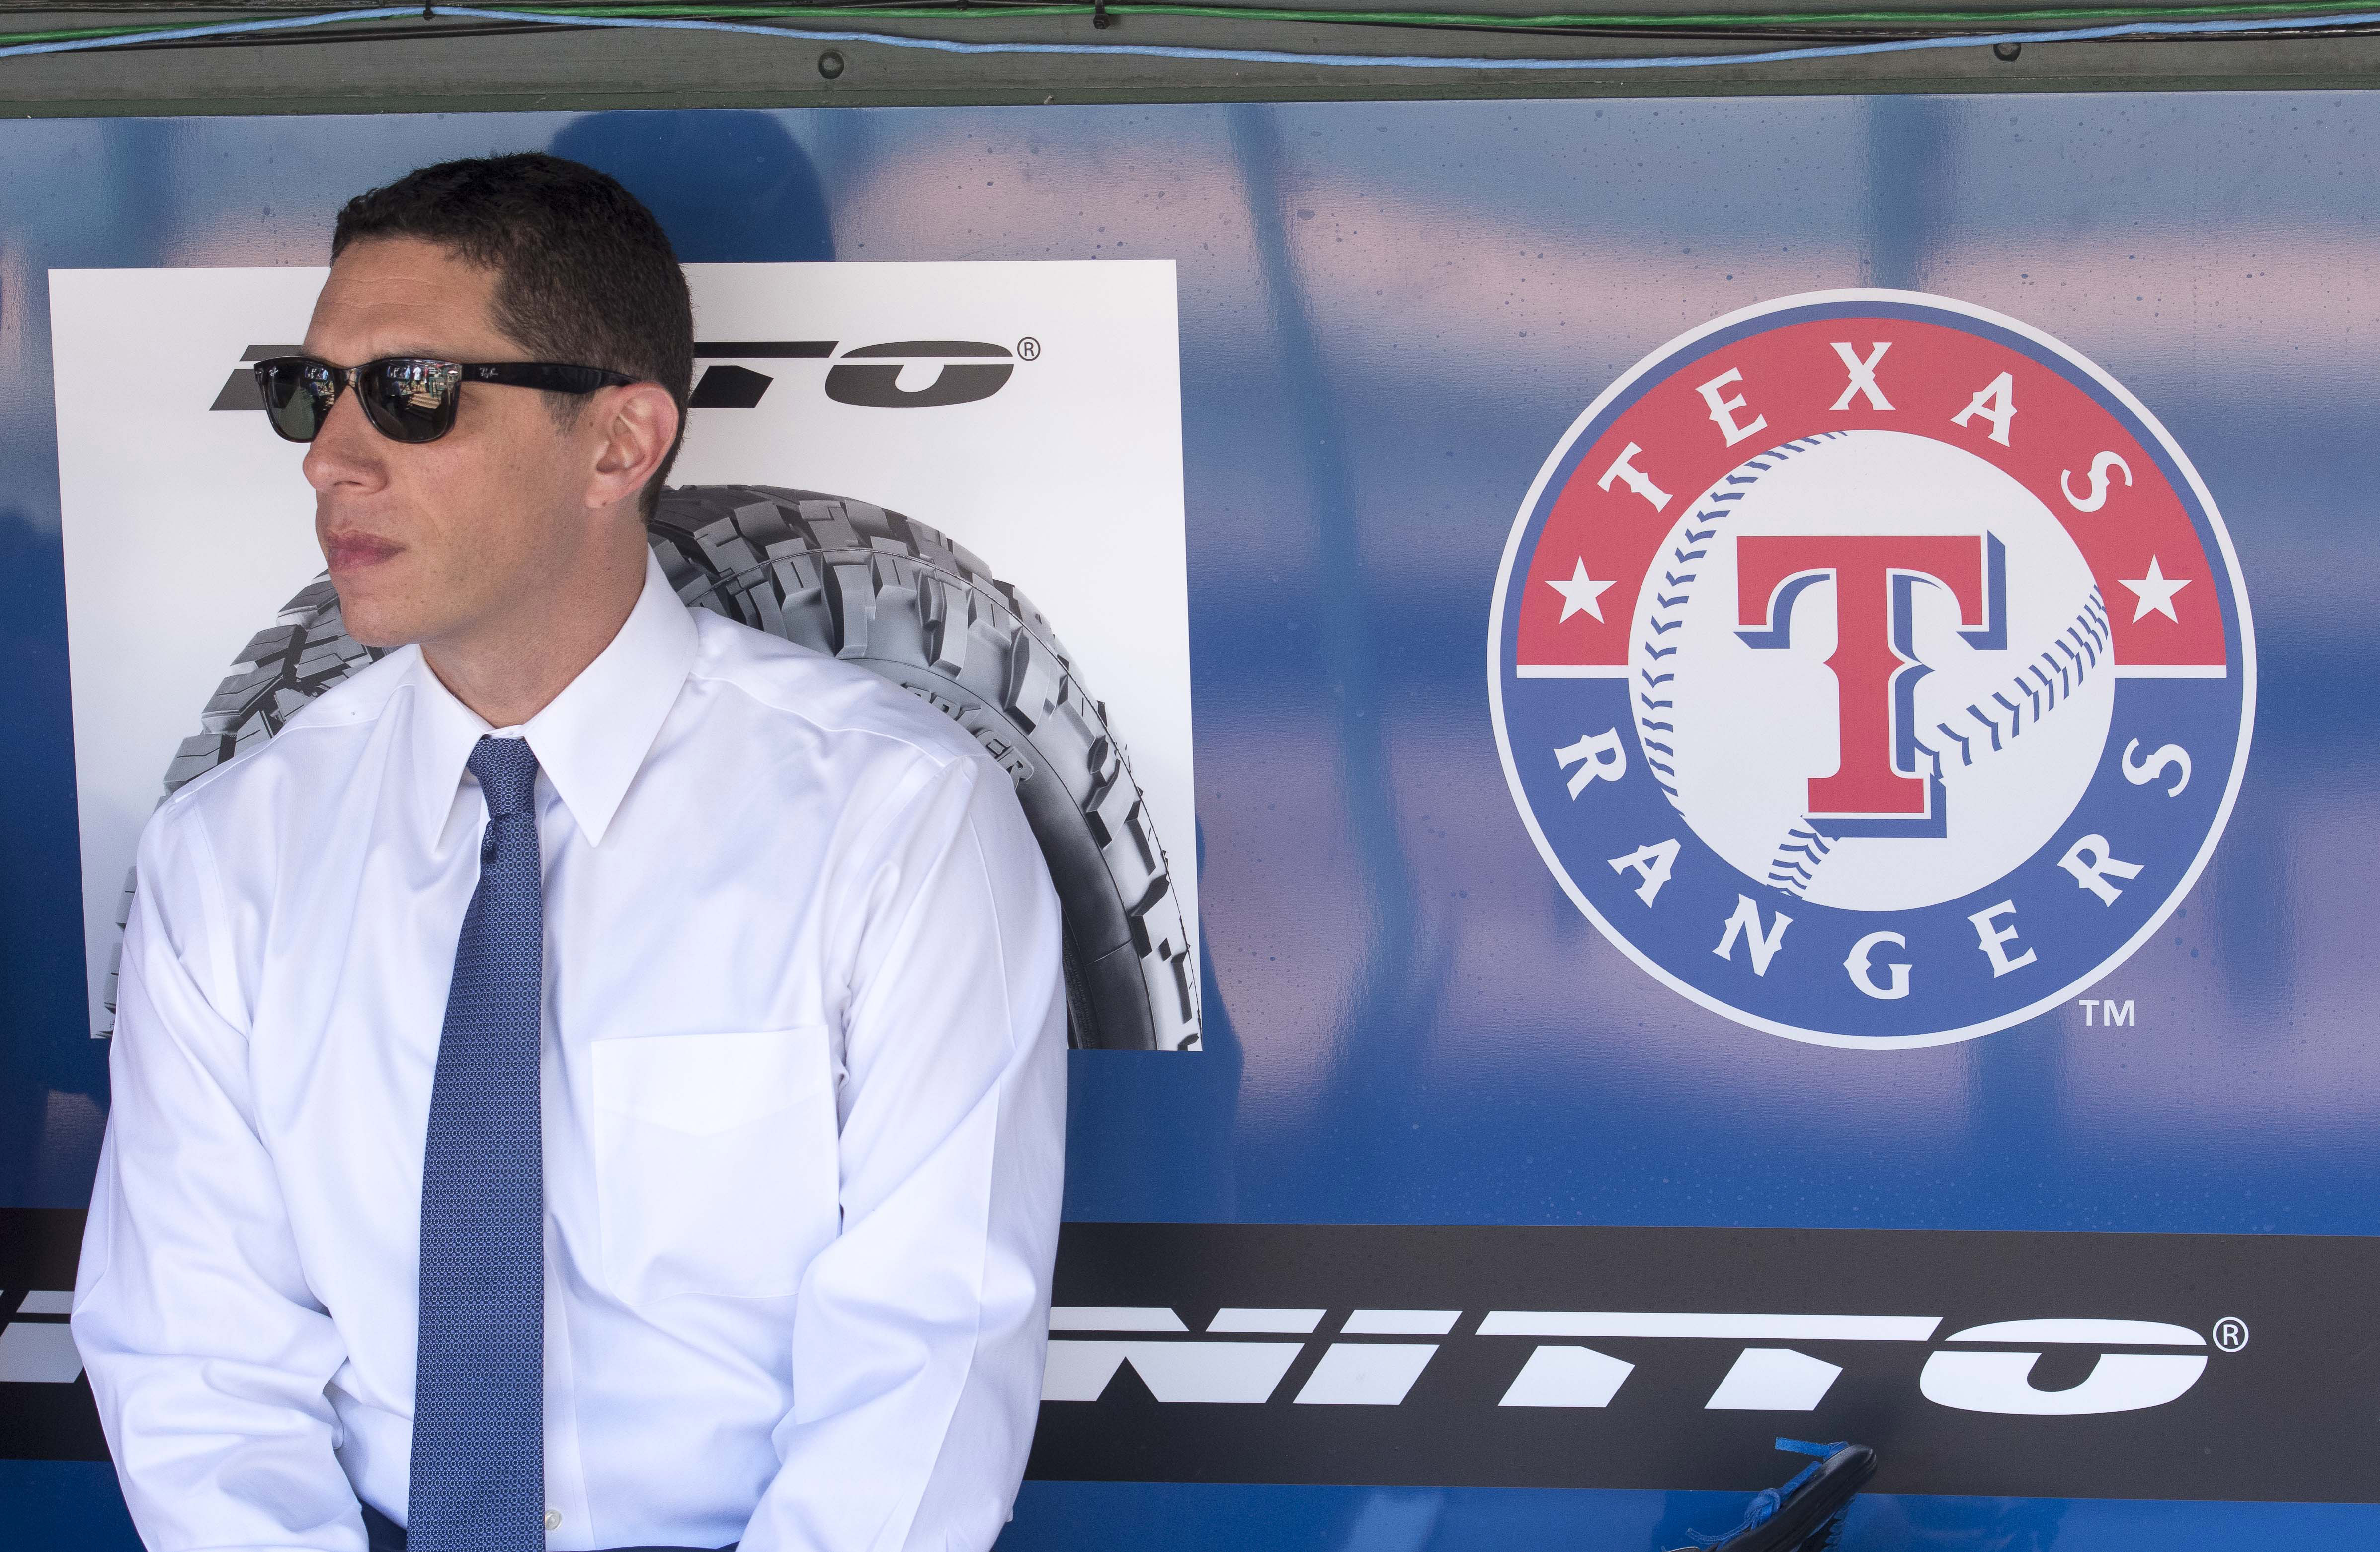 9991052-mlb-cleveland-indians-at-texas-rangers